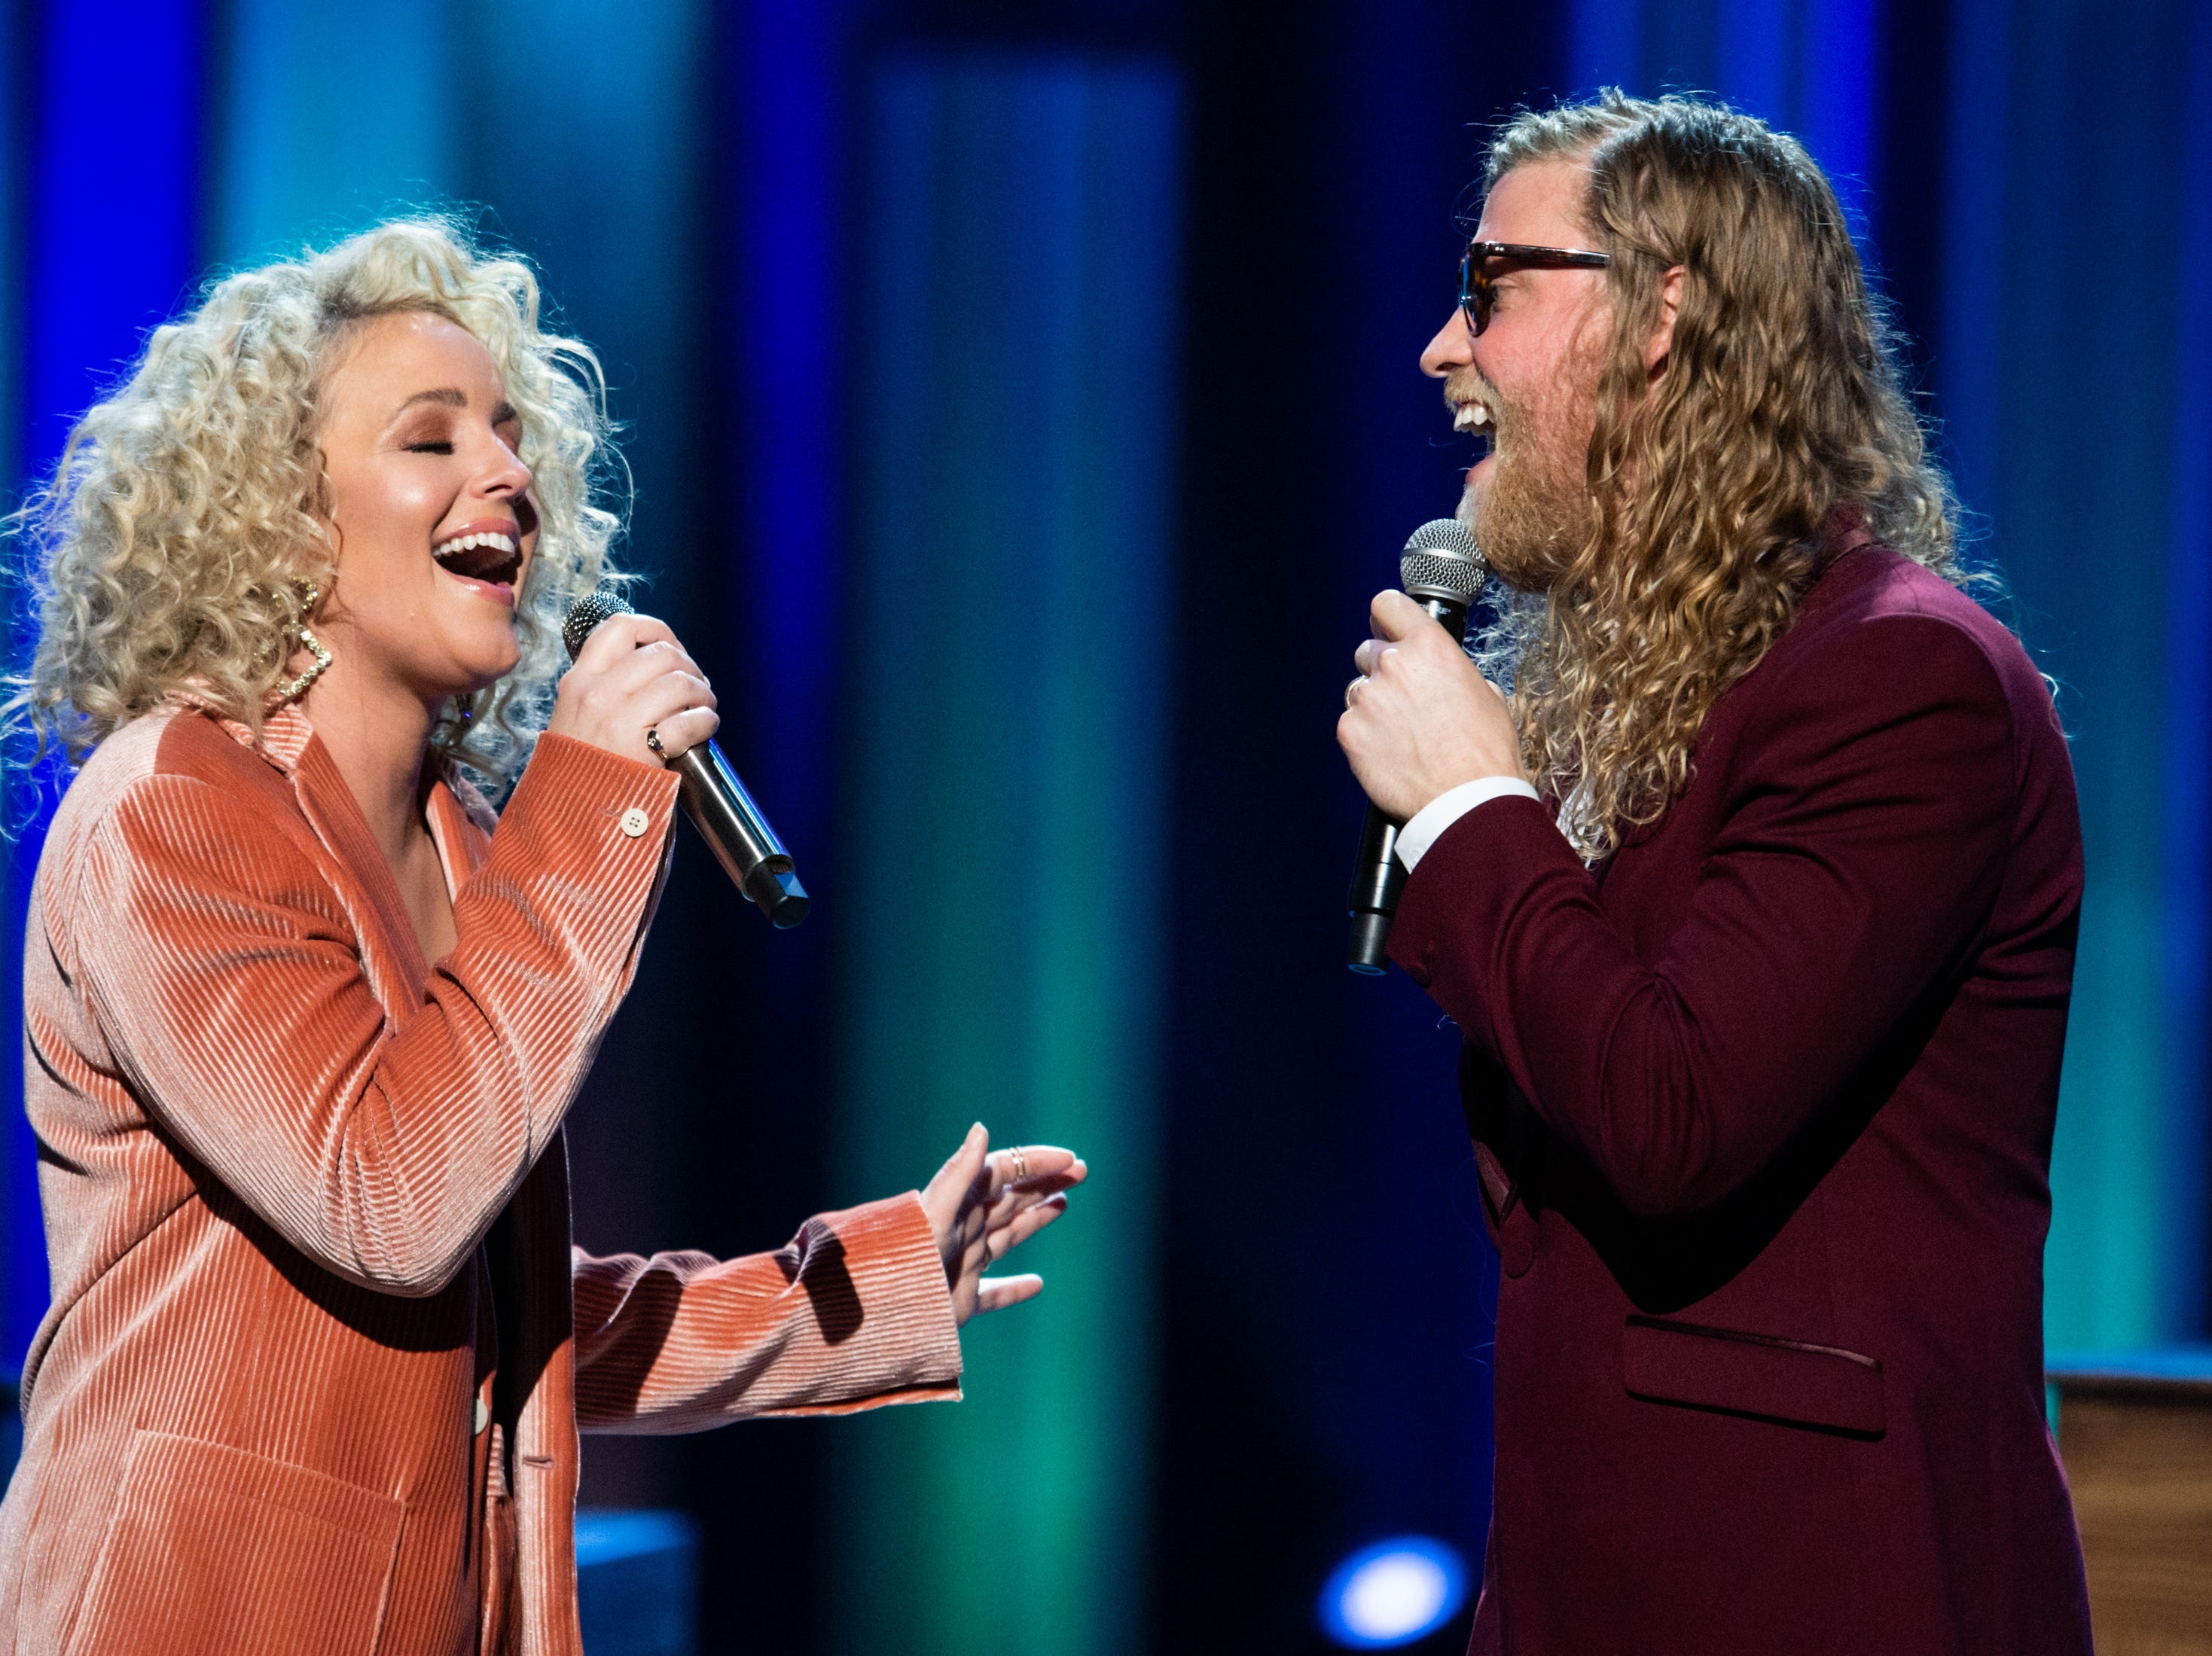 Cam and Allen Stone perform during the An Opry Salute to Ray Charles concert at The Grand Ole Opry in Nashville, Tenn., Monday, Oct. 8, 2018.